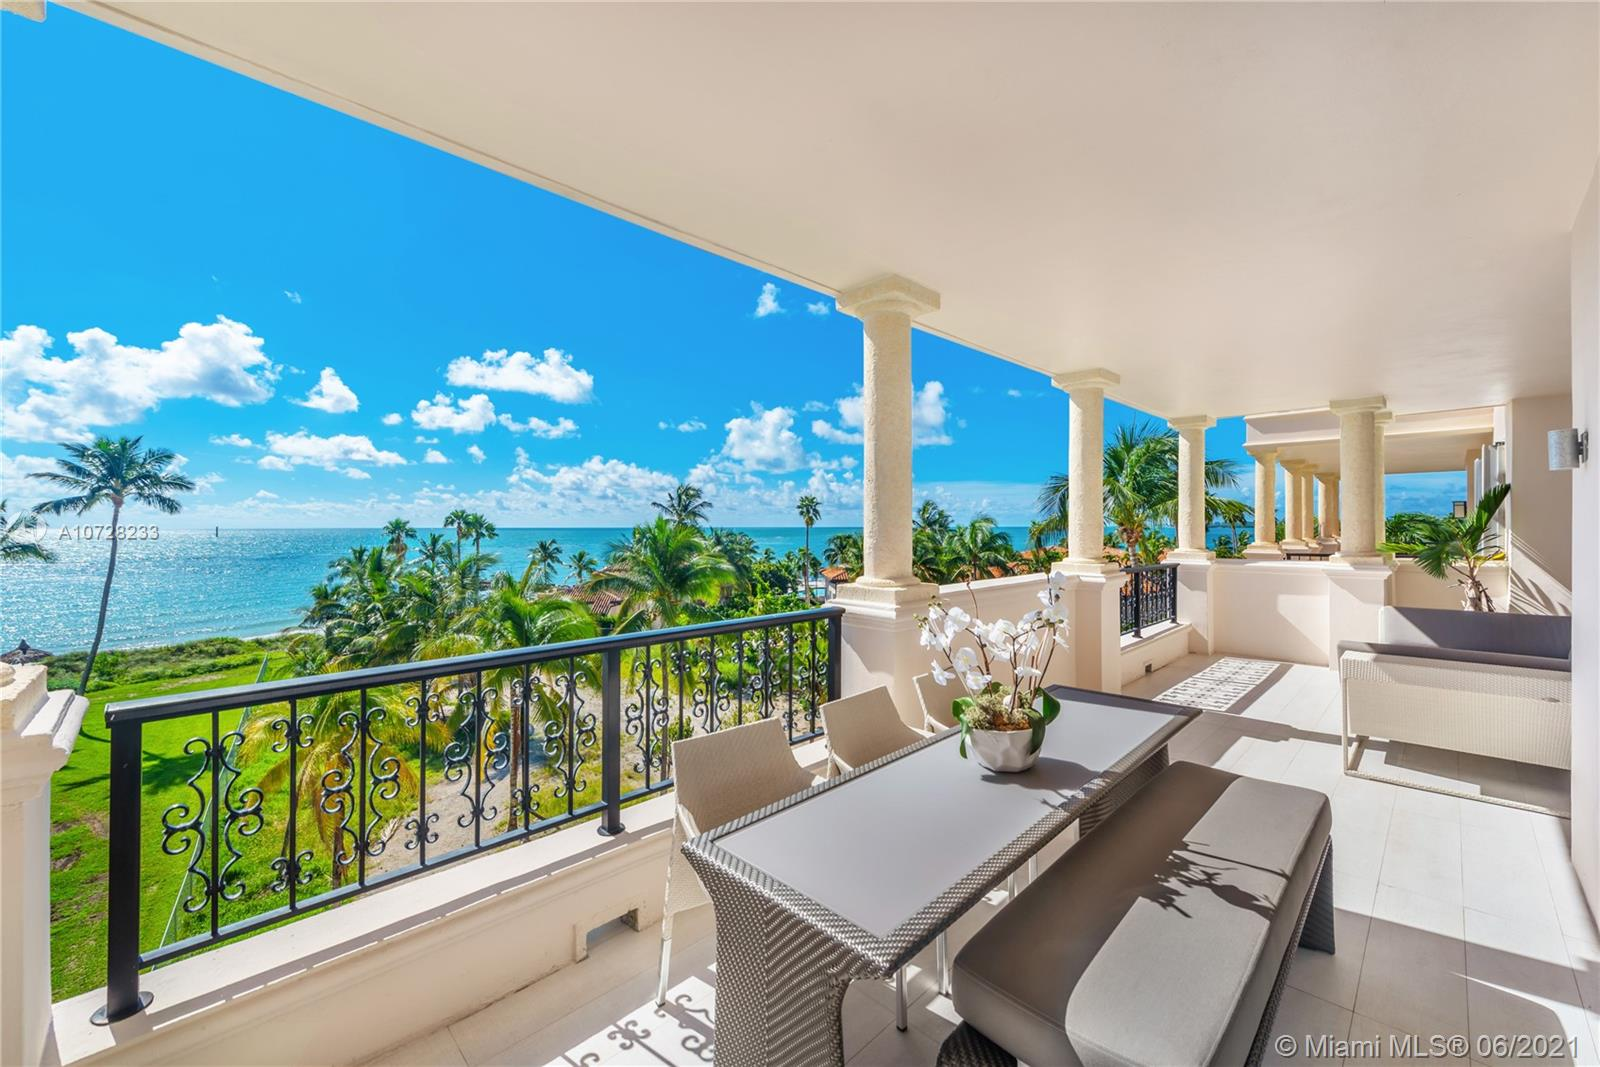 19243  Fisher Island Dr #19243 For Sale A10728233, FL